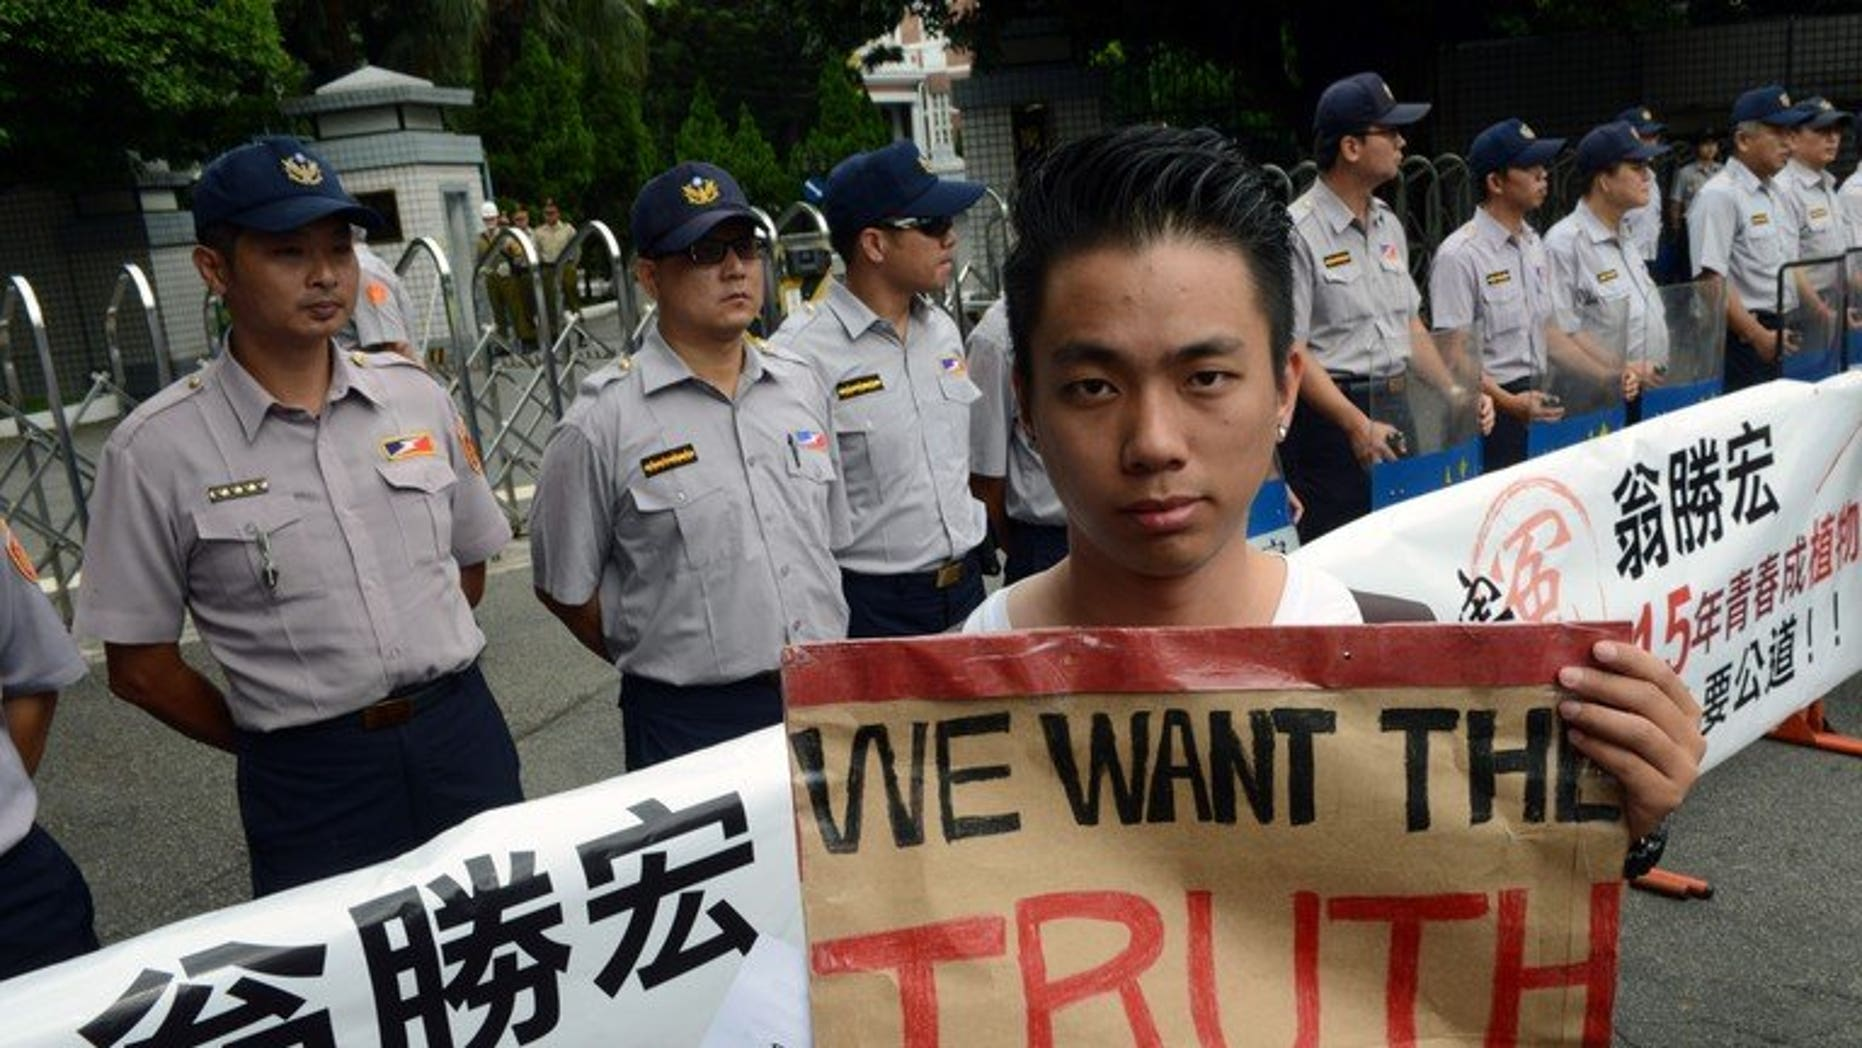 A protester during an anti-military rally outside the defence ministry in Taipei on July 20, 2013. Thousands of protesters demanded justice for a corporal who died after allegedly being abused in the military, in a case that sparked anger across Taiwan.